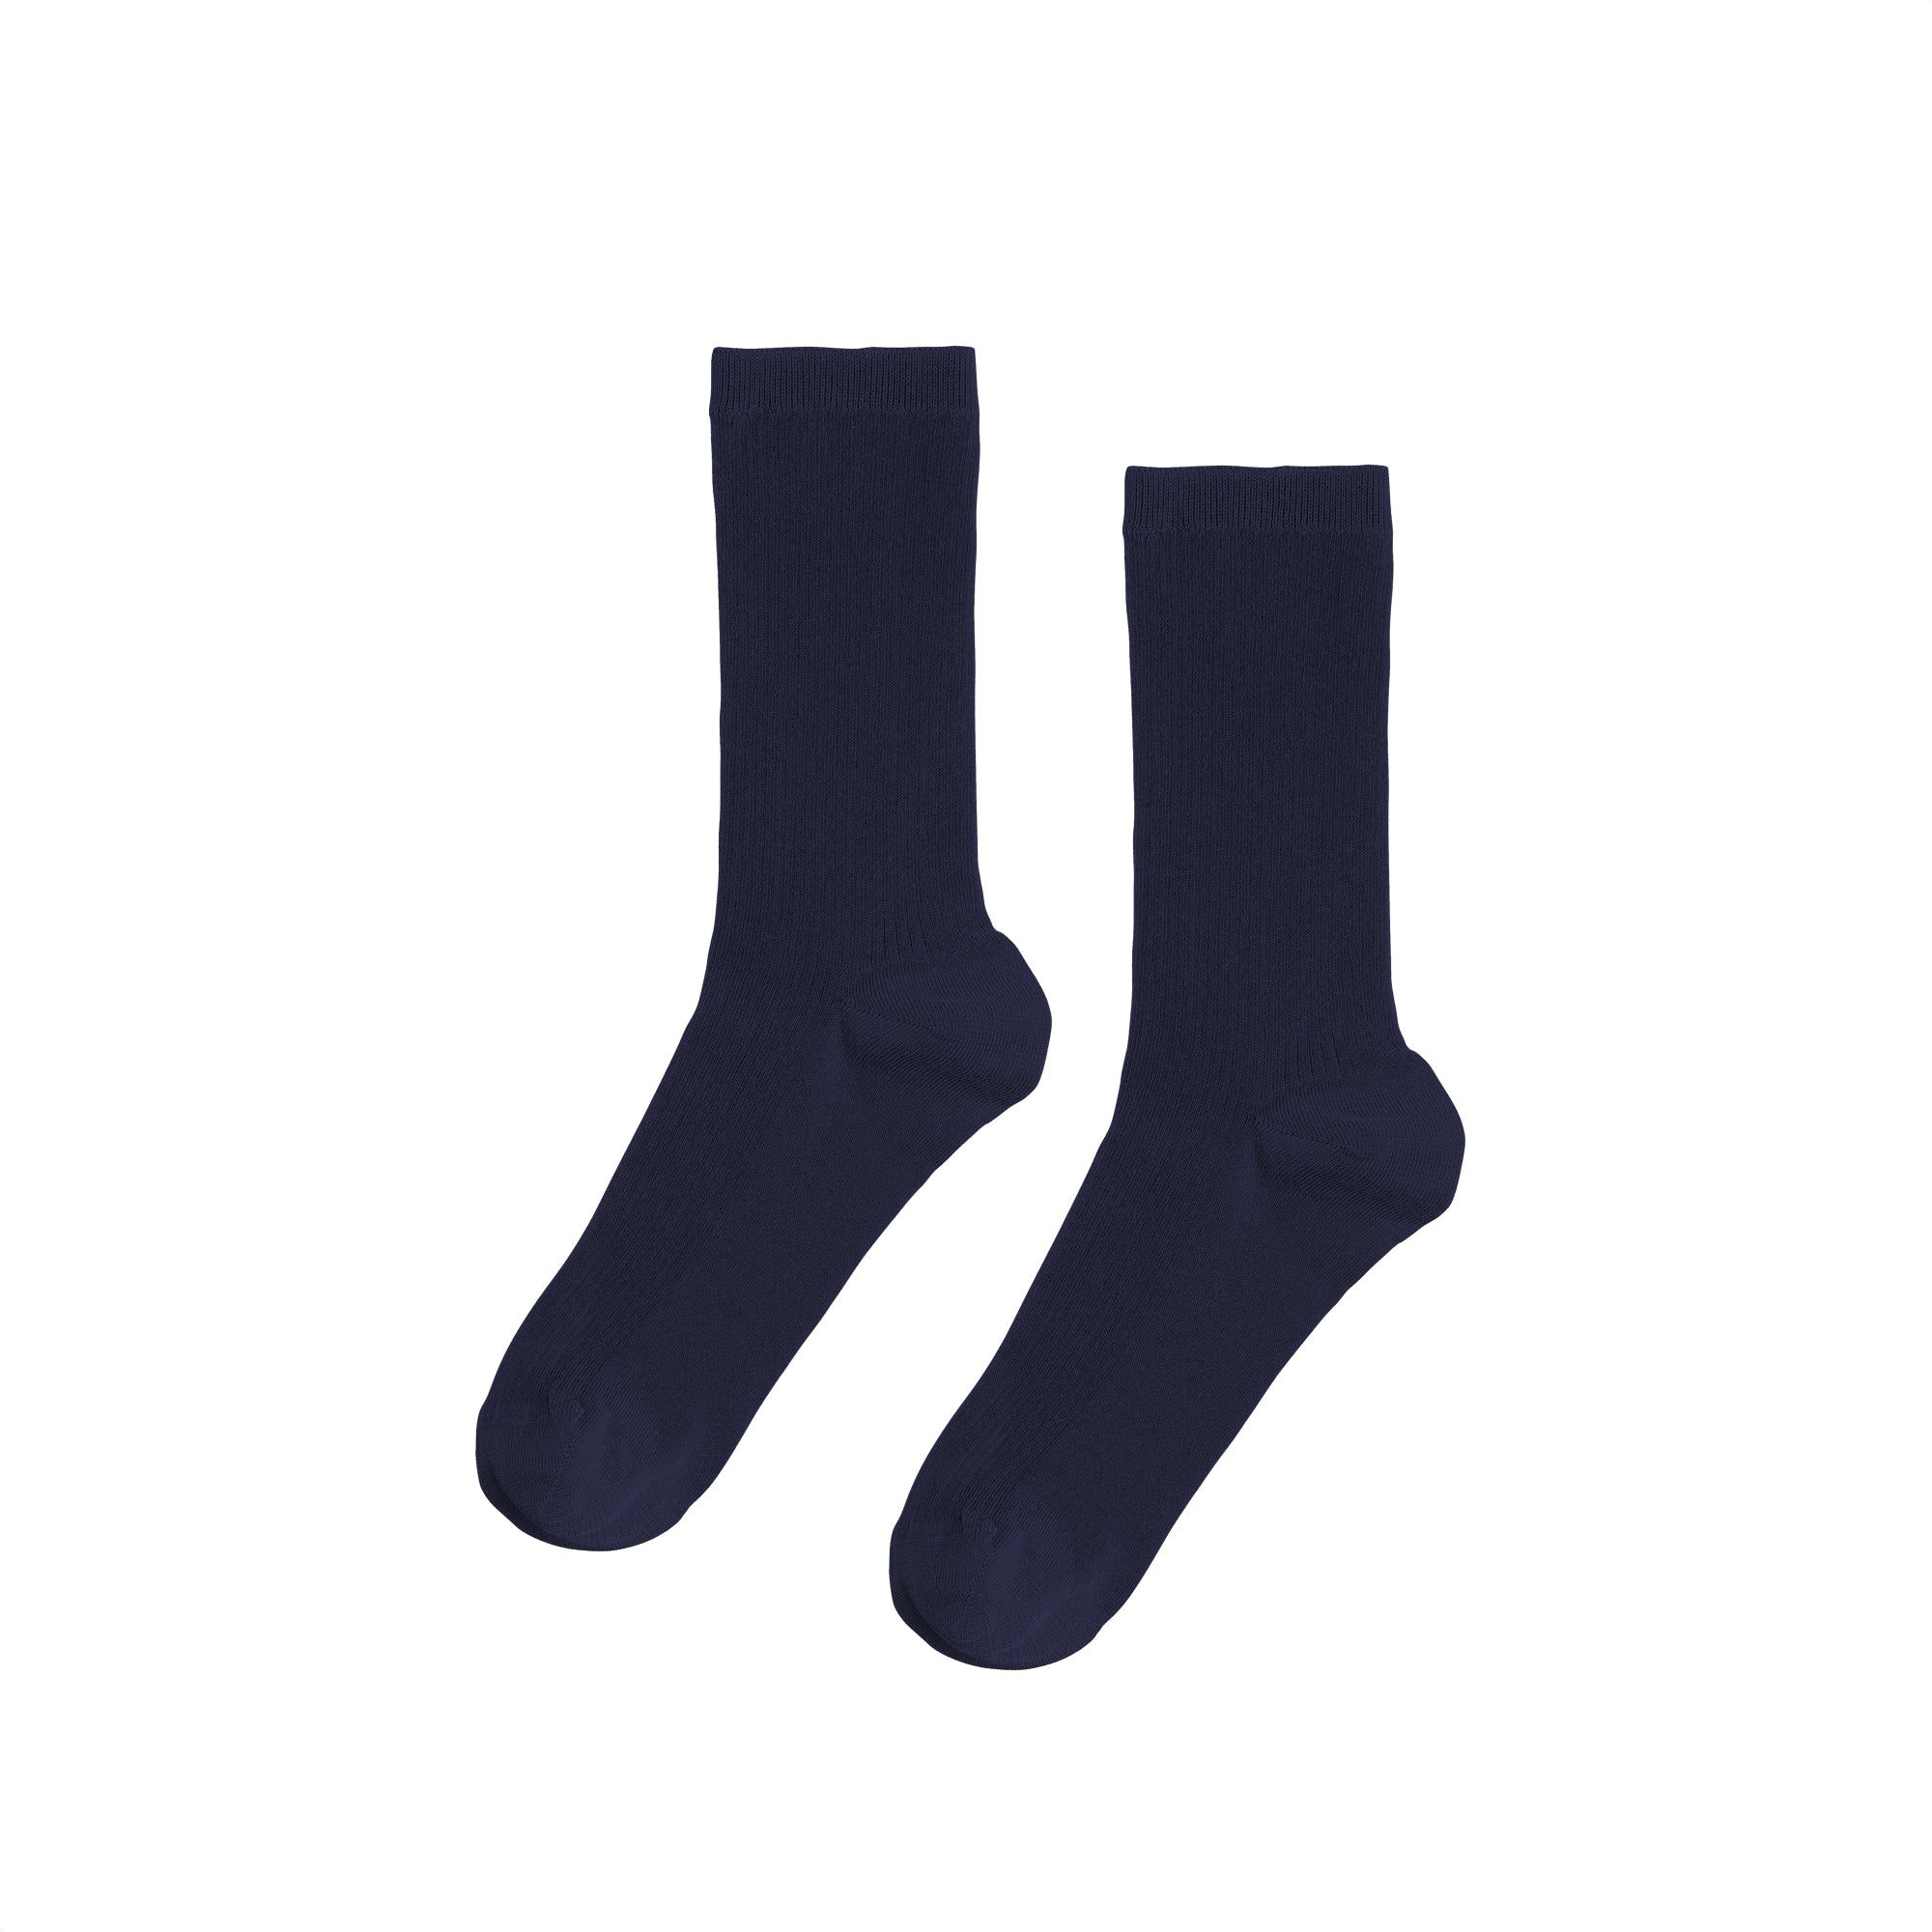 Colorful Standard Women's Organic Socks - Navy Blue